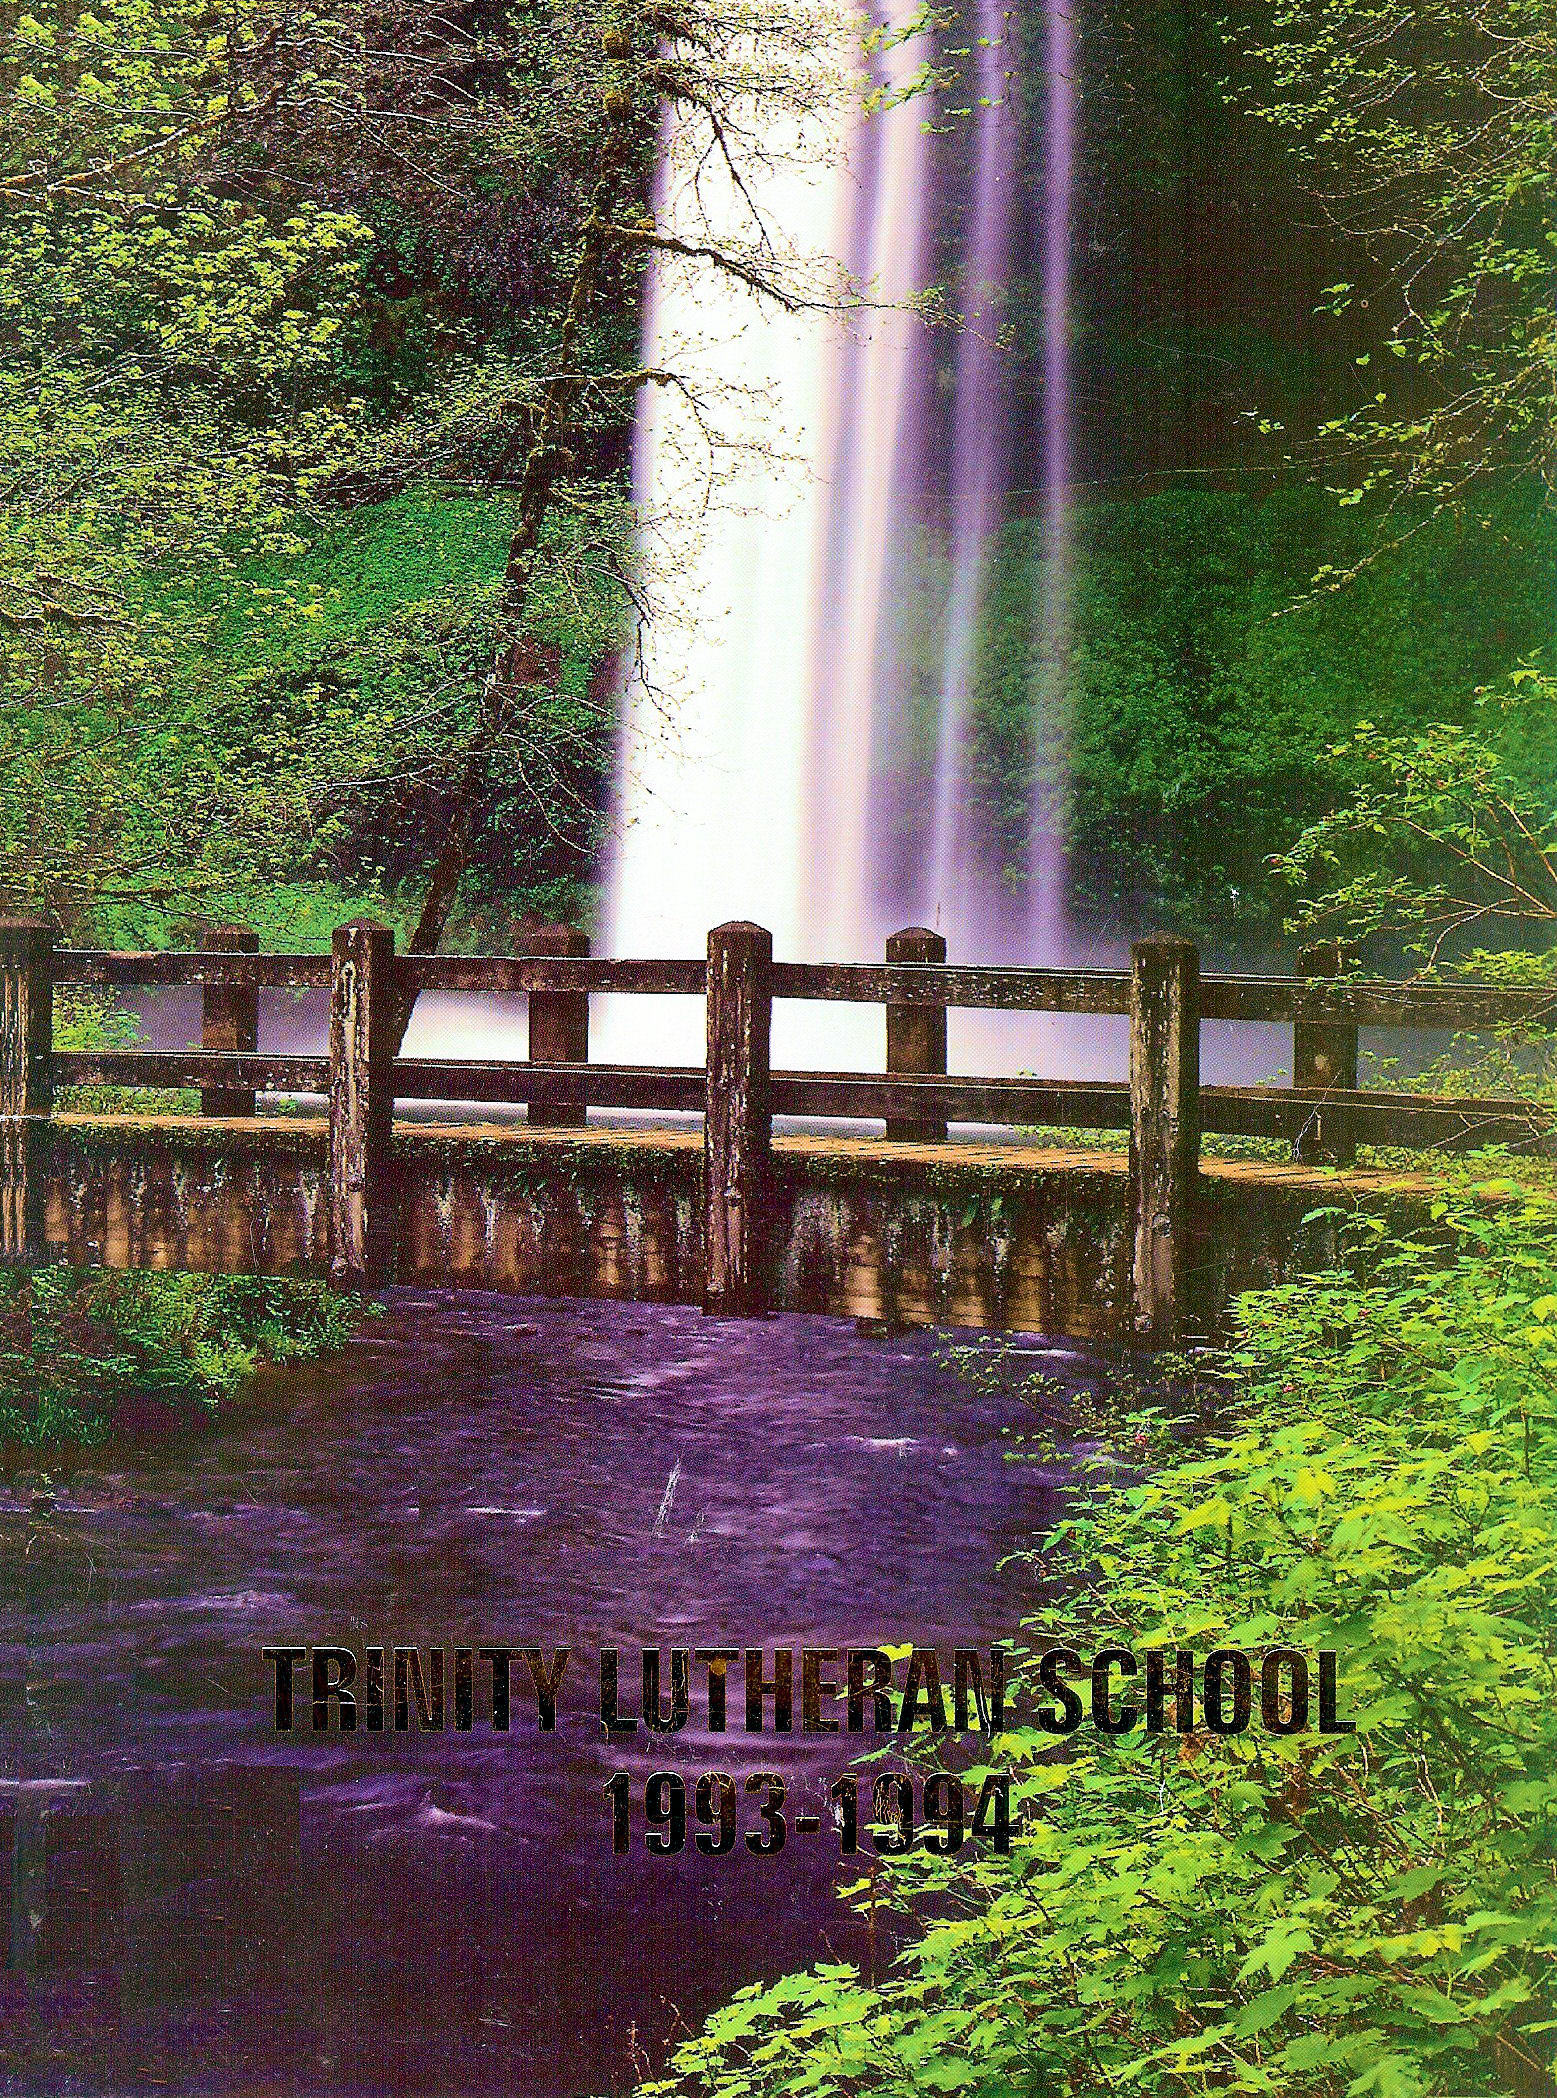 93-94 Yearbook Cover